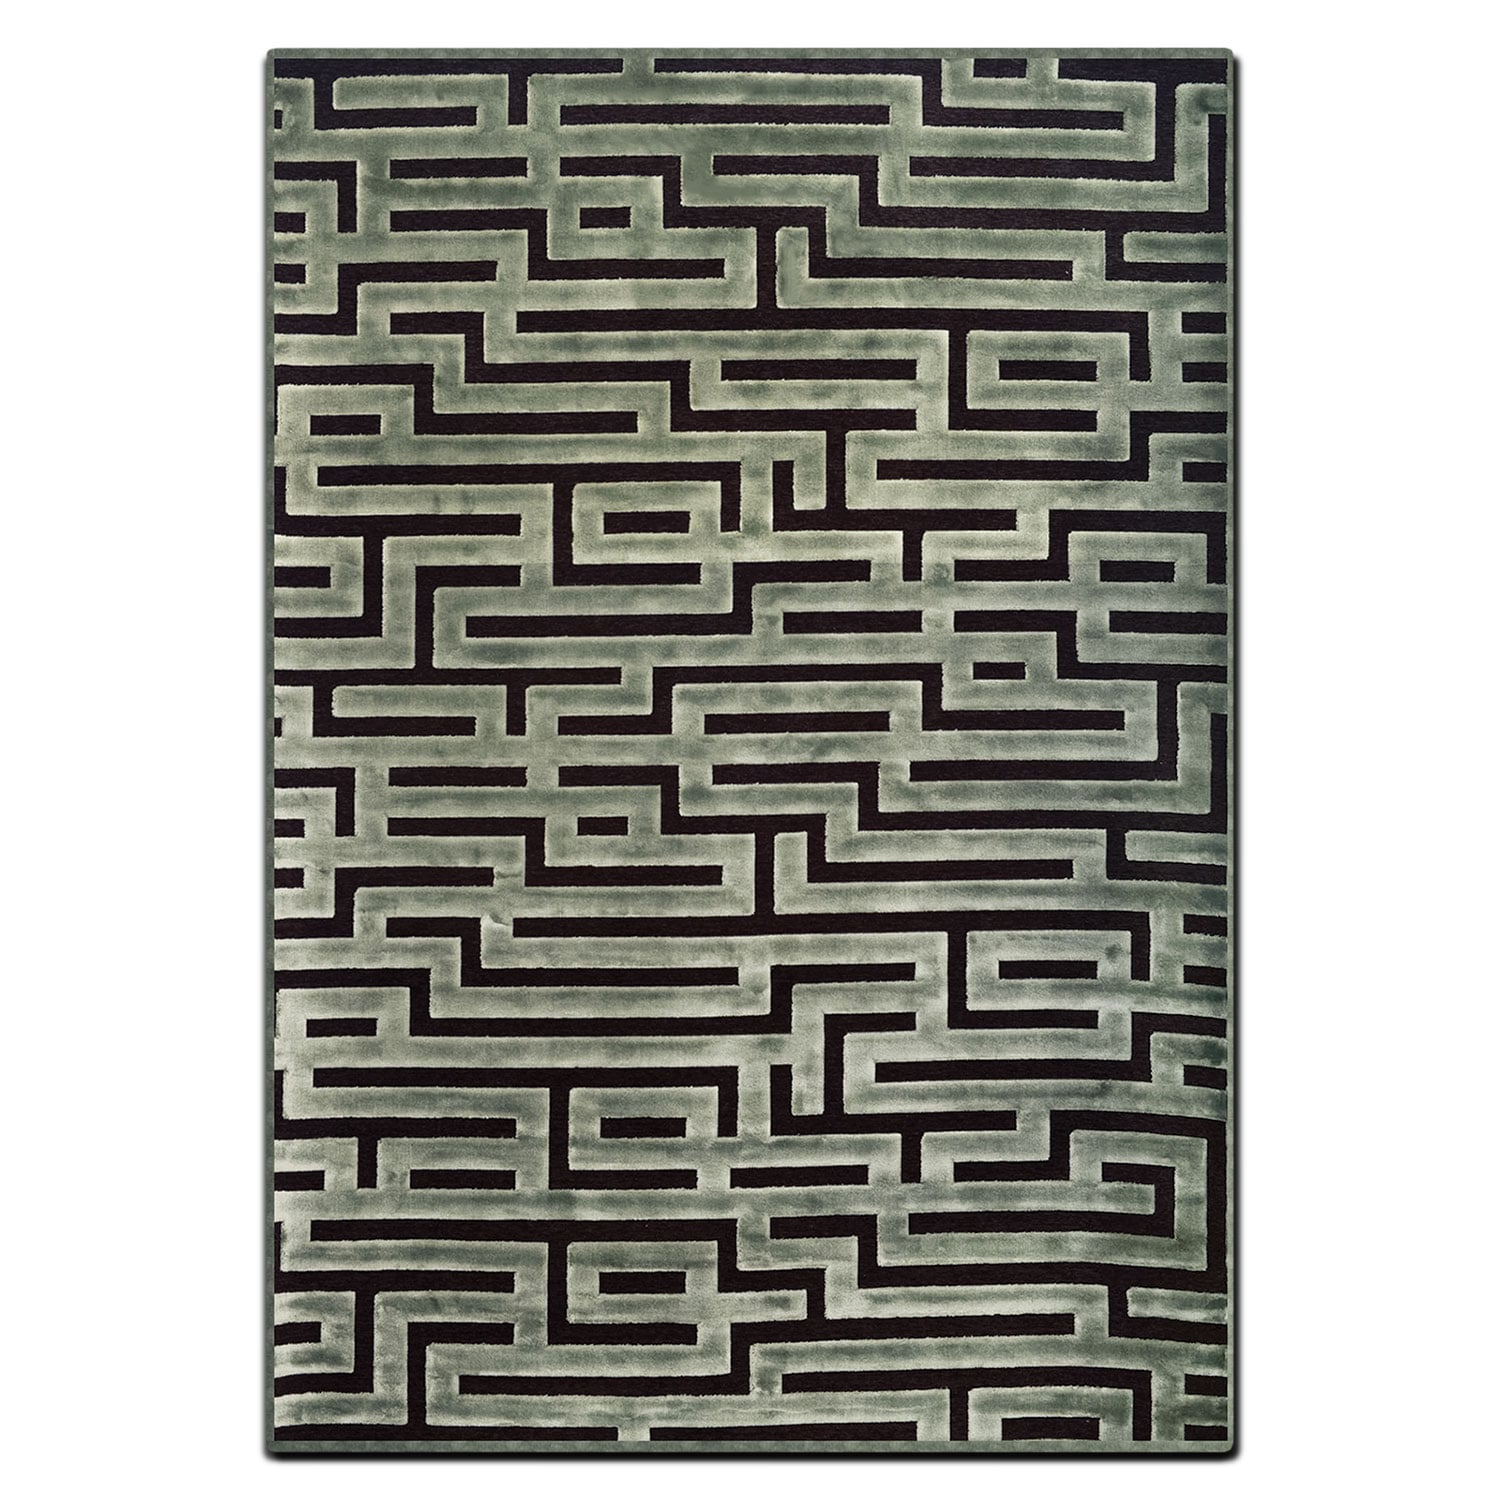 Rugs - Napa 5' x 8' Area Rug - Seafoam and Charcoal